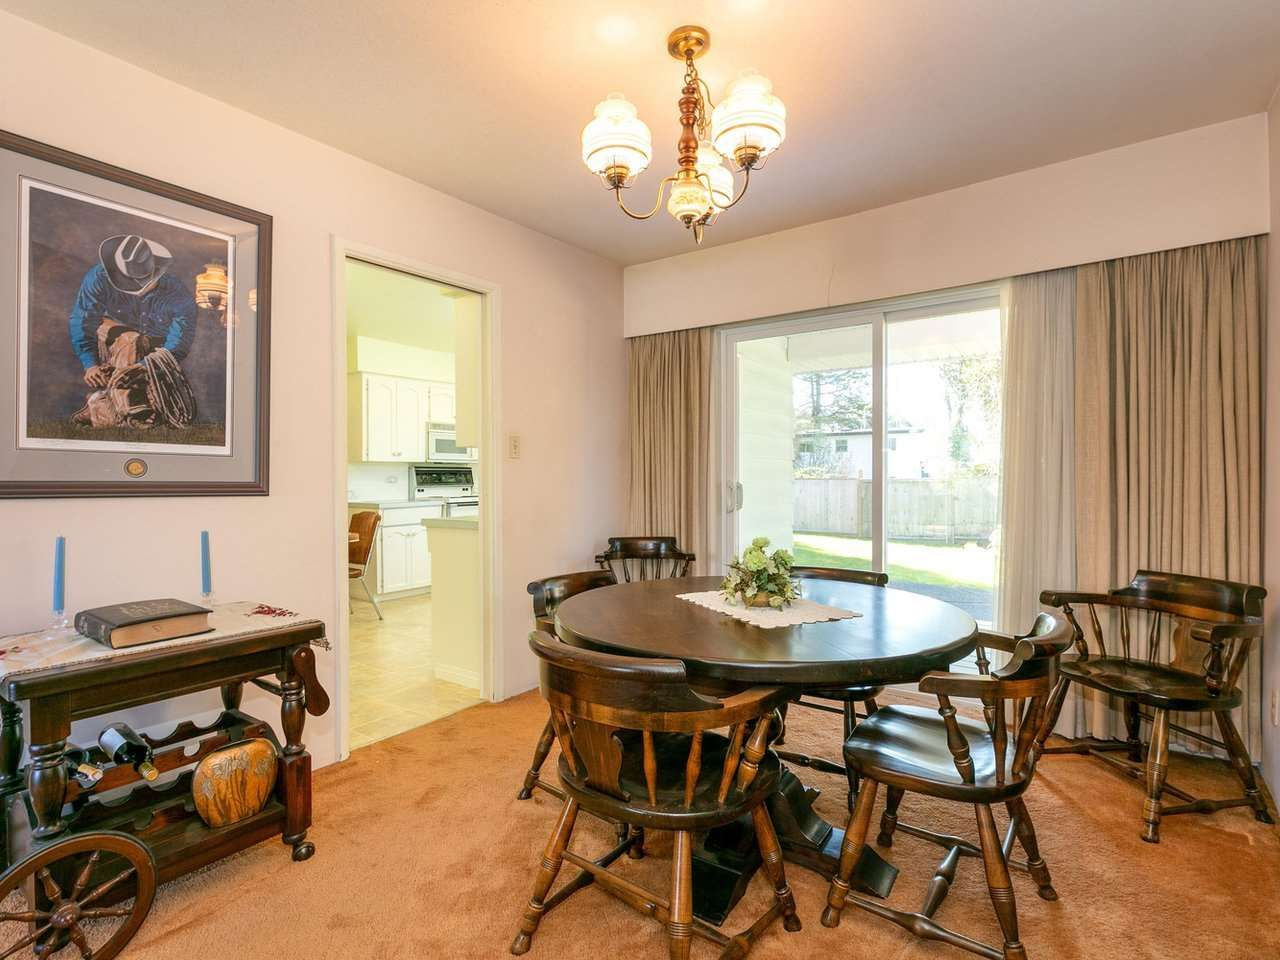 Photo 6: Photos: 1422 GROVER Avenue in Coquitlam: Central Coquitlam House for sale : MLS®# R2568207